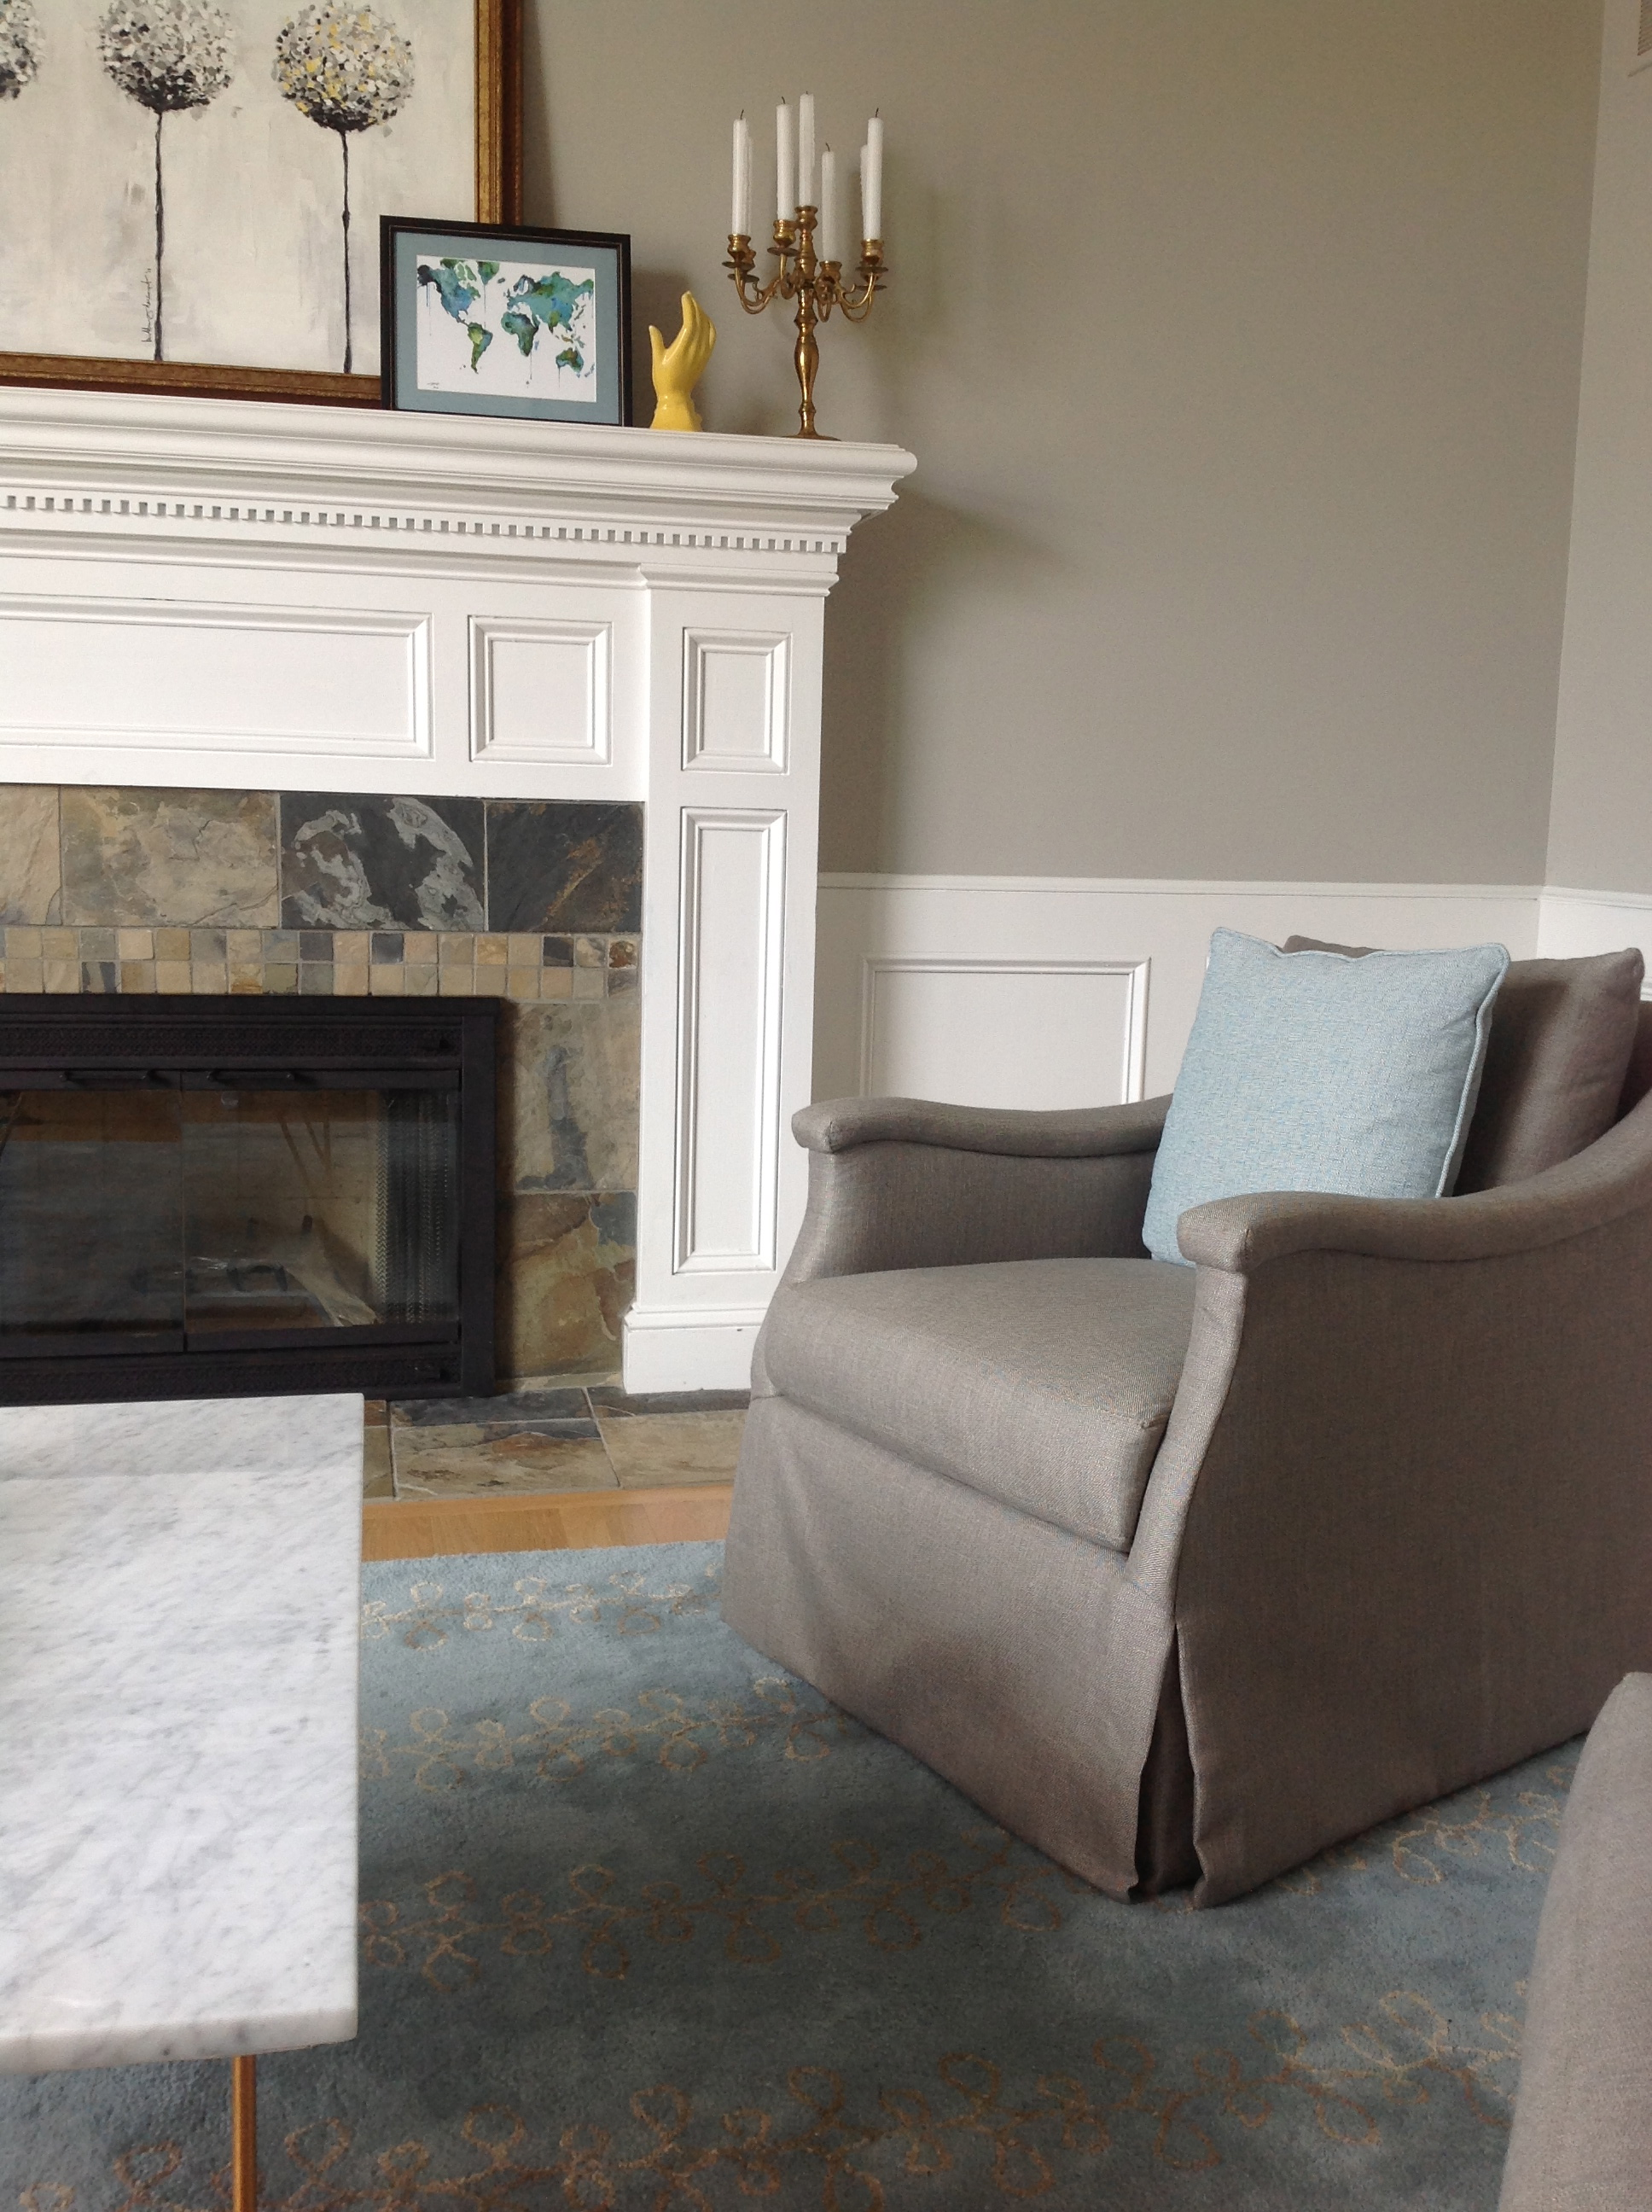 www.saranobledesigns.com - The Lunds living room showcasing one of my favorite swivel chairs.